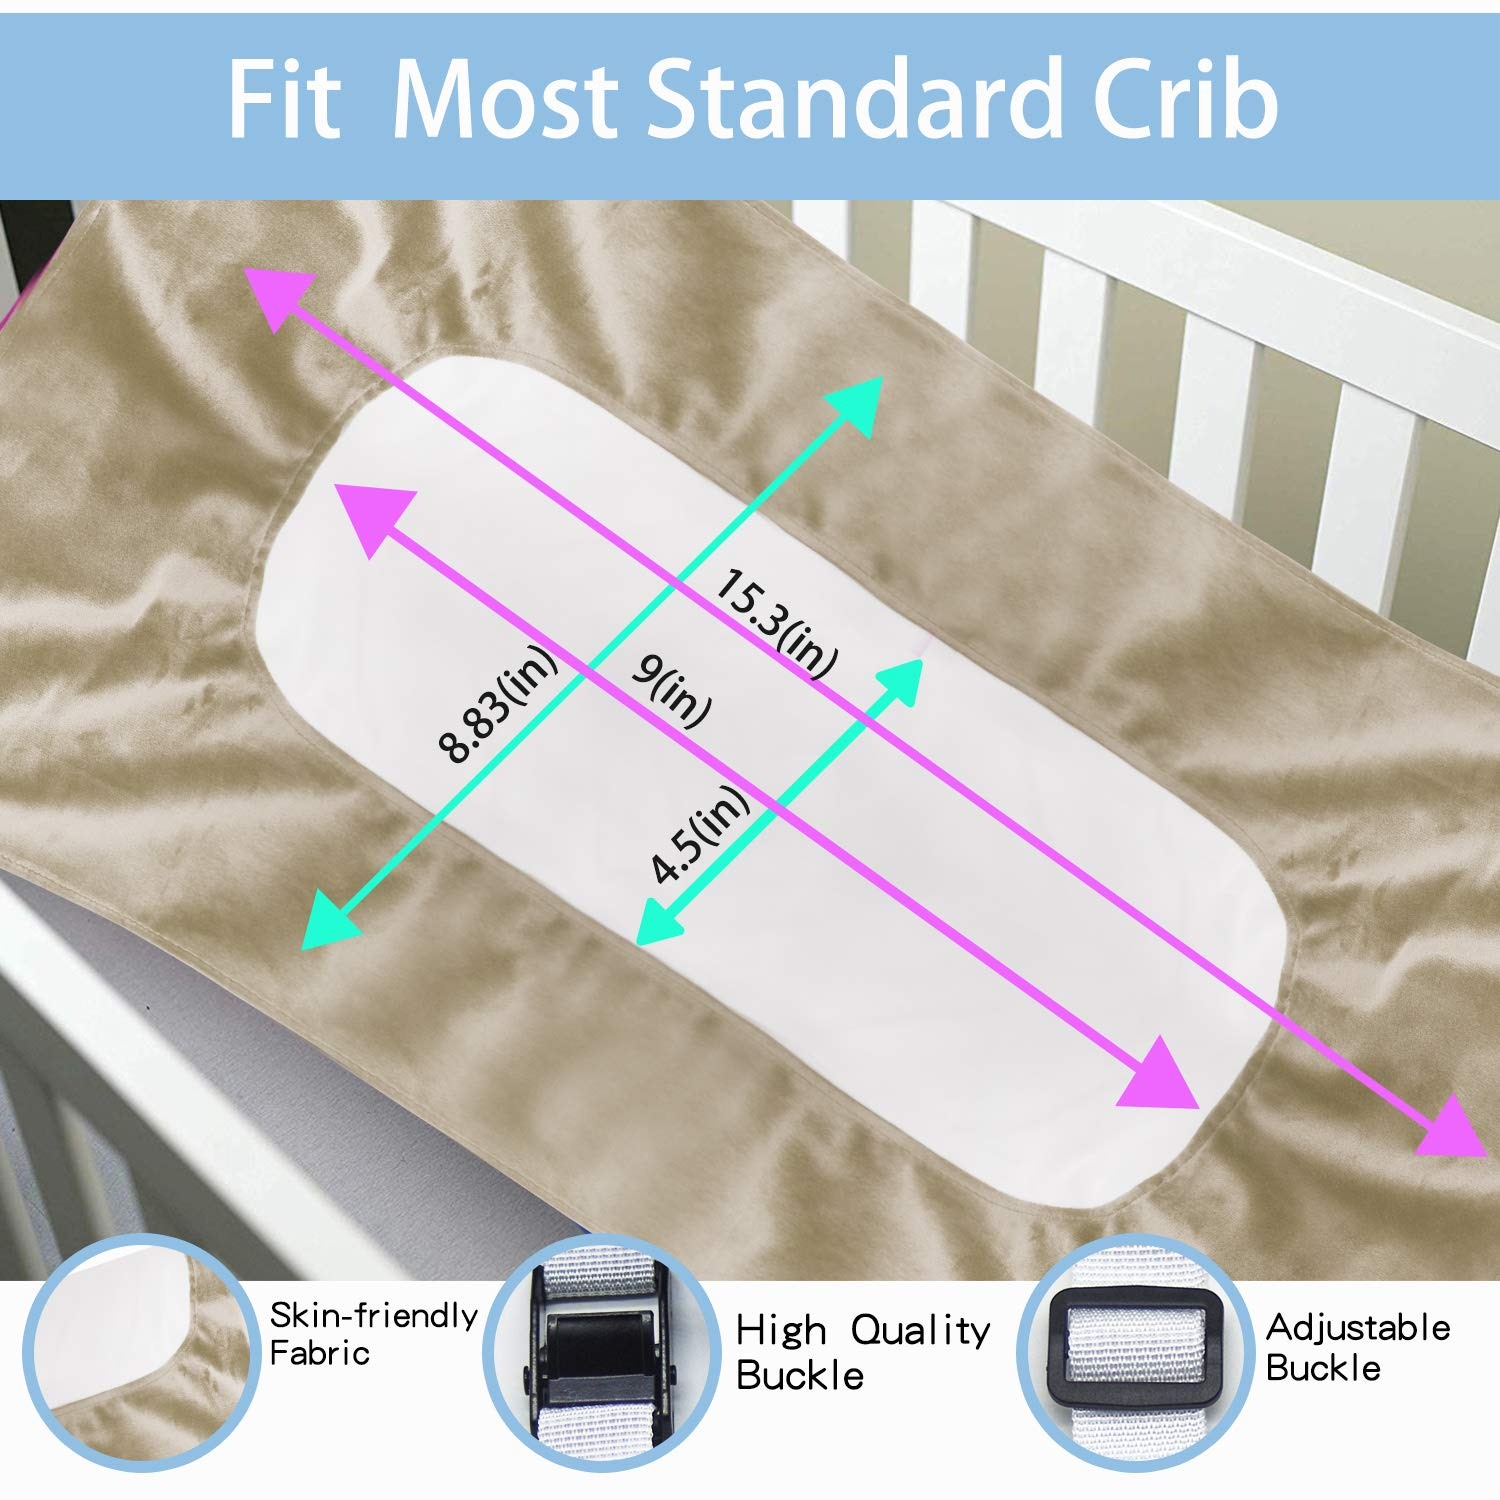 Baby Hammock for Crib New Upgrade, Mimics Womb Soft and Comfortable Material with Strong Adjustable Straps Newborn Hammock (Light Brown) by Jsbeuith (Image #3)